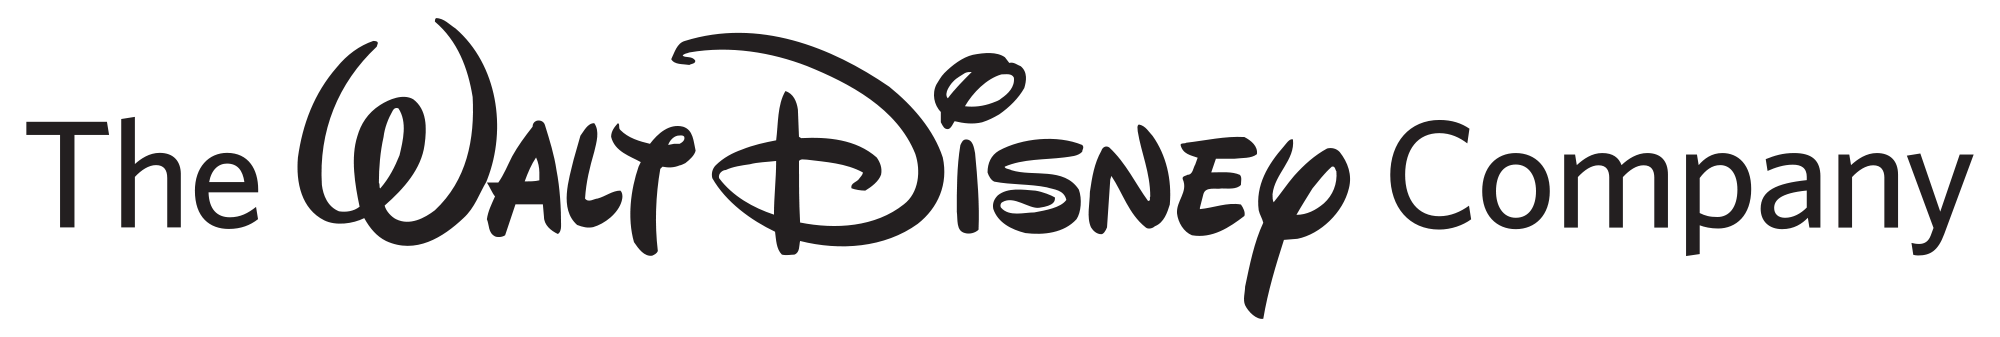 walt disney company How much is disney worth this statistic shows the total assets of the walt disney company from 2006 to 2017 in 2016, the walt disney company held assets worth a total of over 92 billion us dollars.